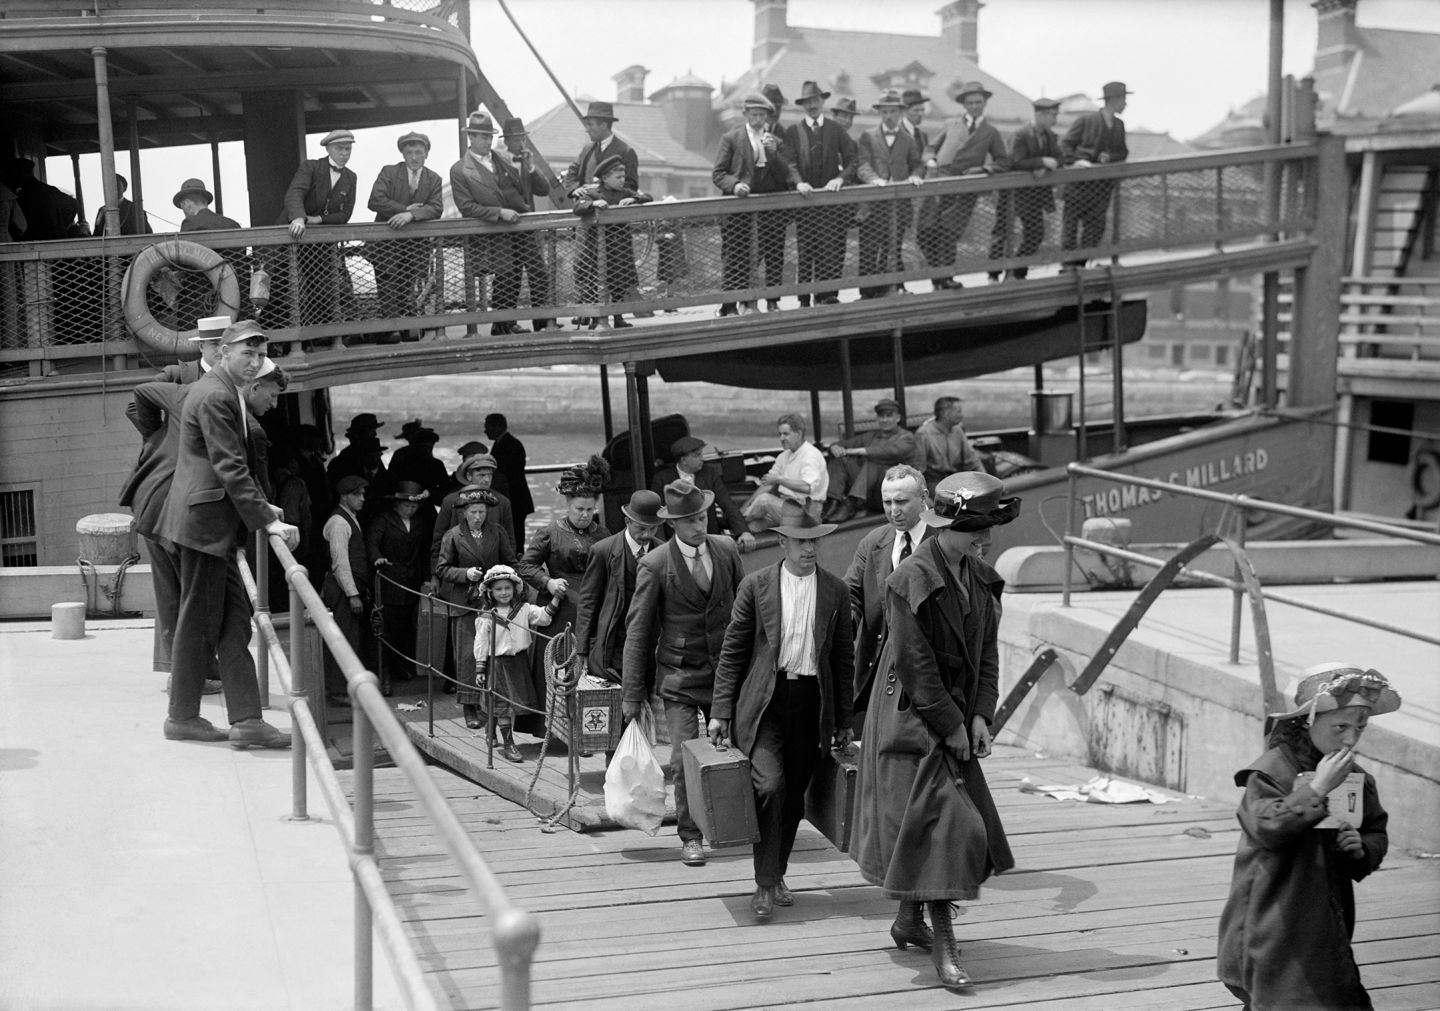 an analysis of ellis island in united states reception center for immigrants for more than 60 years Ellis island immigrants having ended two years previously she was probably more than aware that her chance of finding success in the united states.